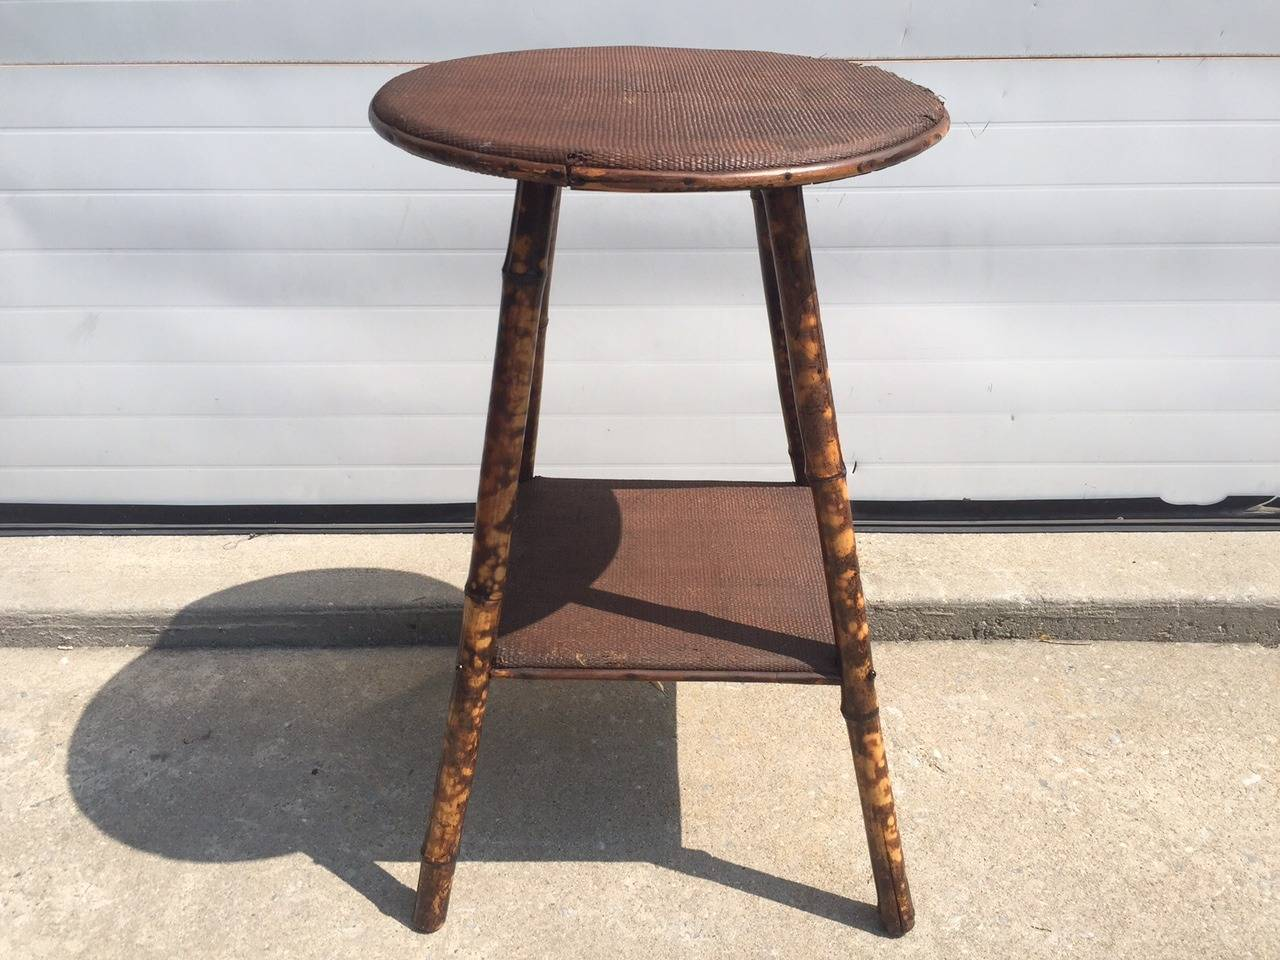 Round side tables - 1930s English Scorched Bamboo And Rattan Round Side Table